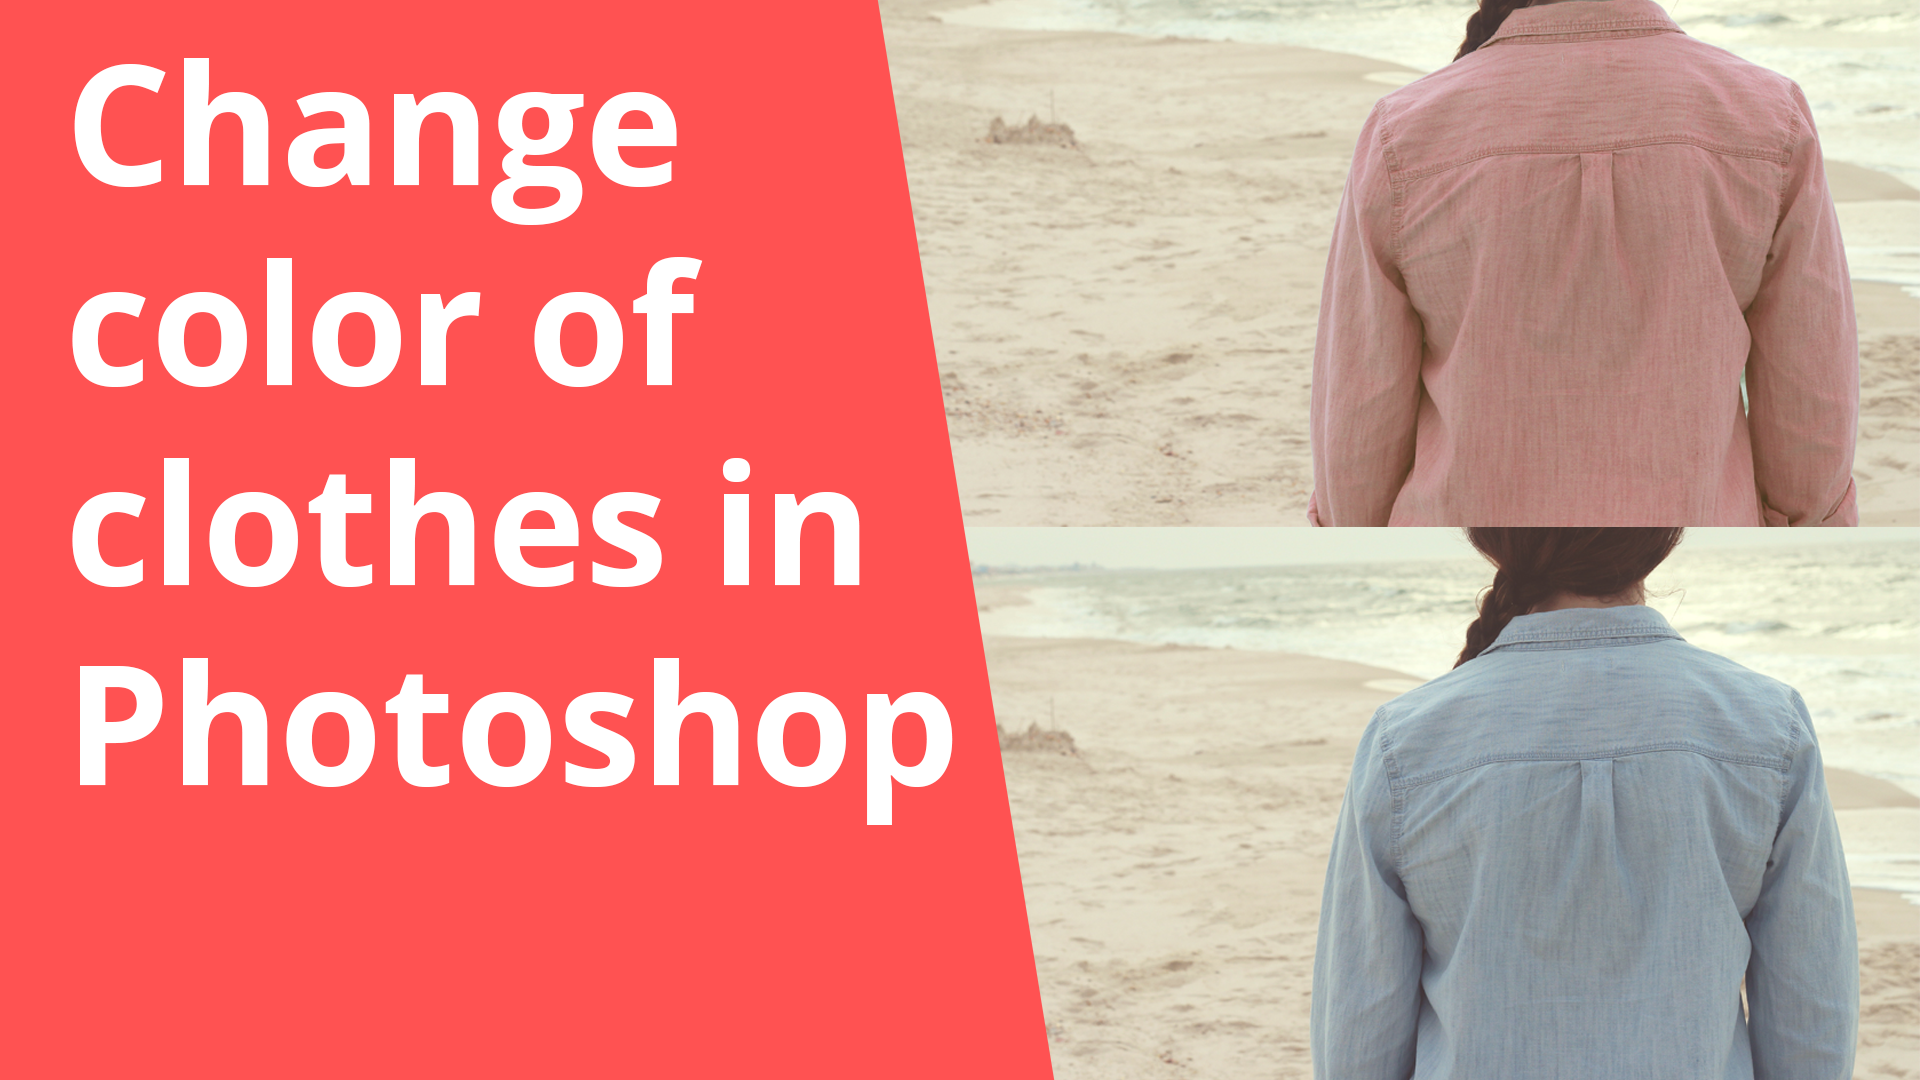 Change the color of clothes in Photoshop